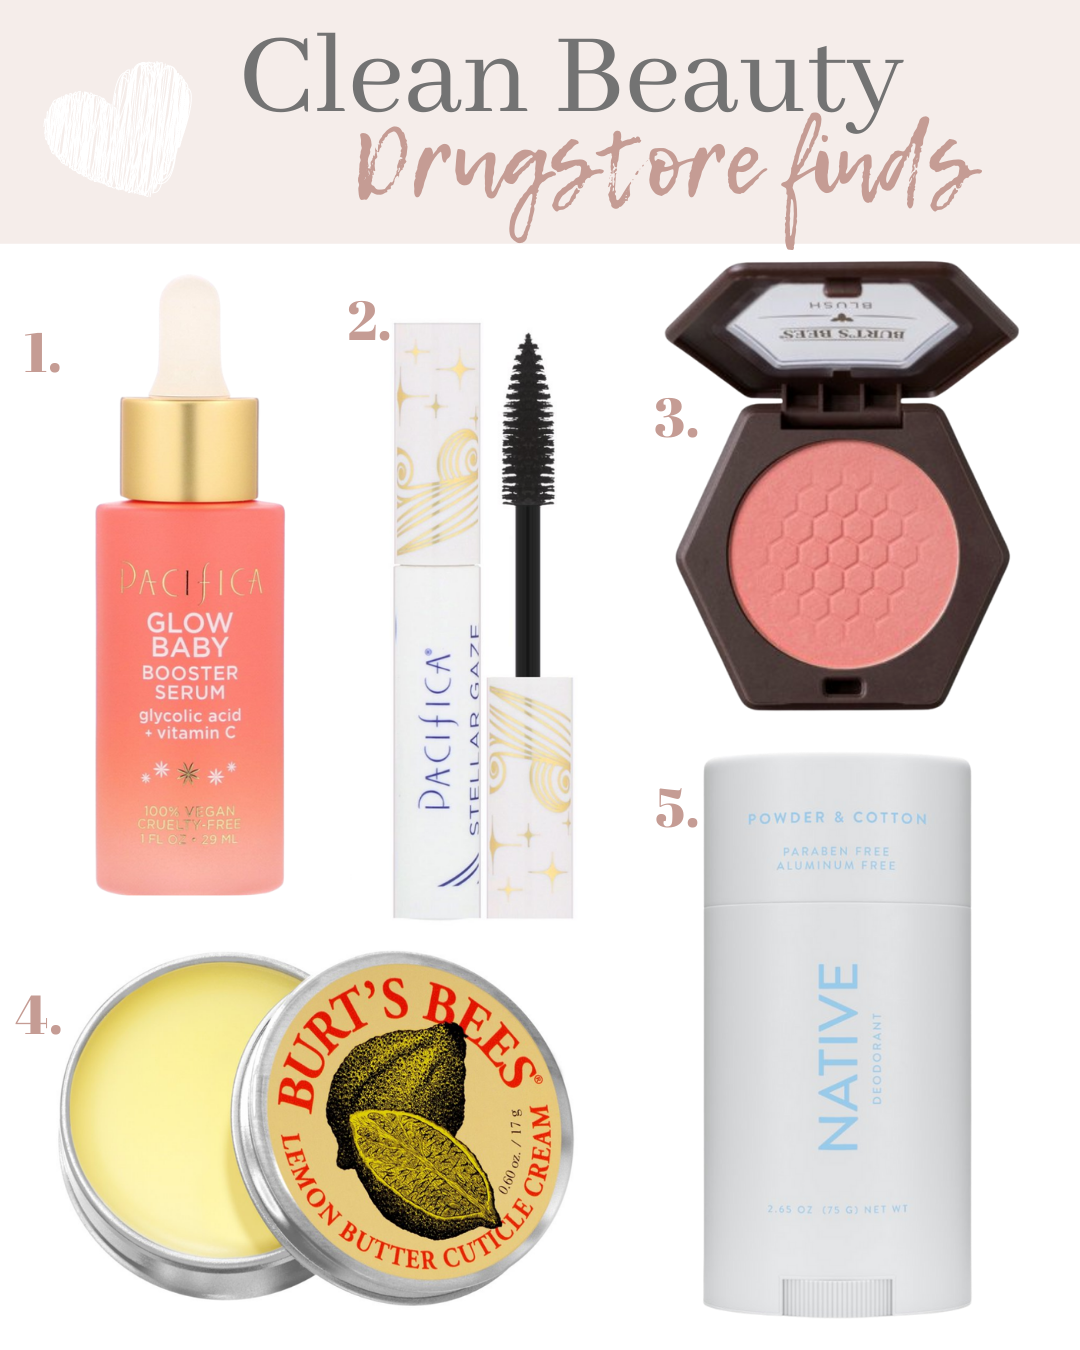 clean beauty drugstore finds